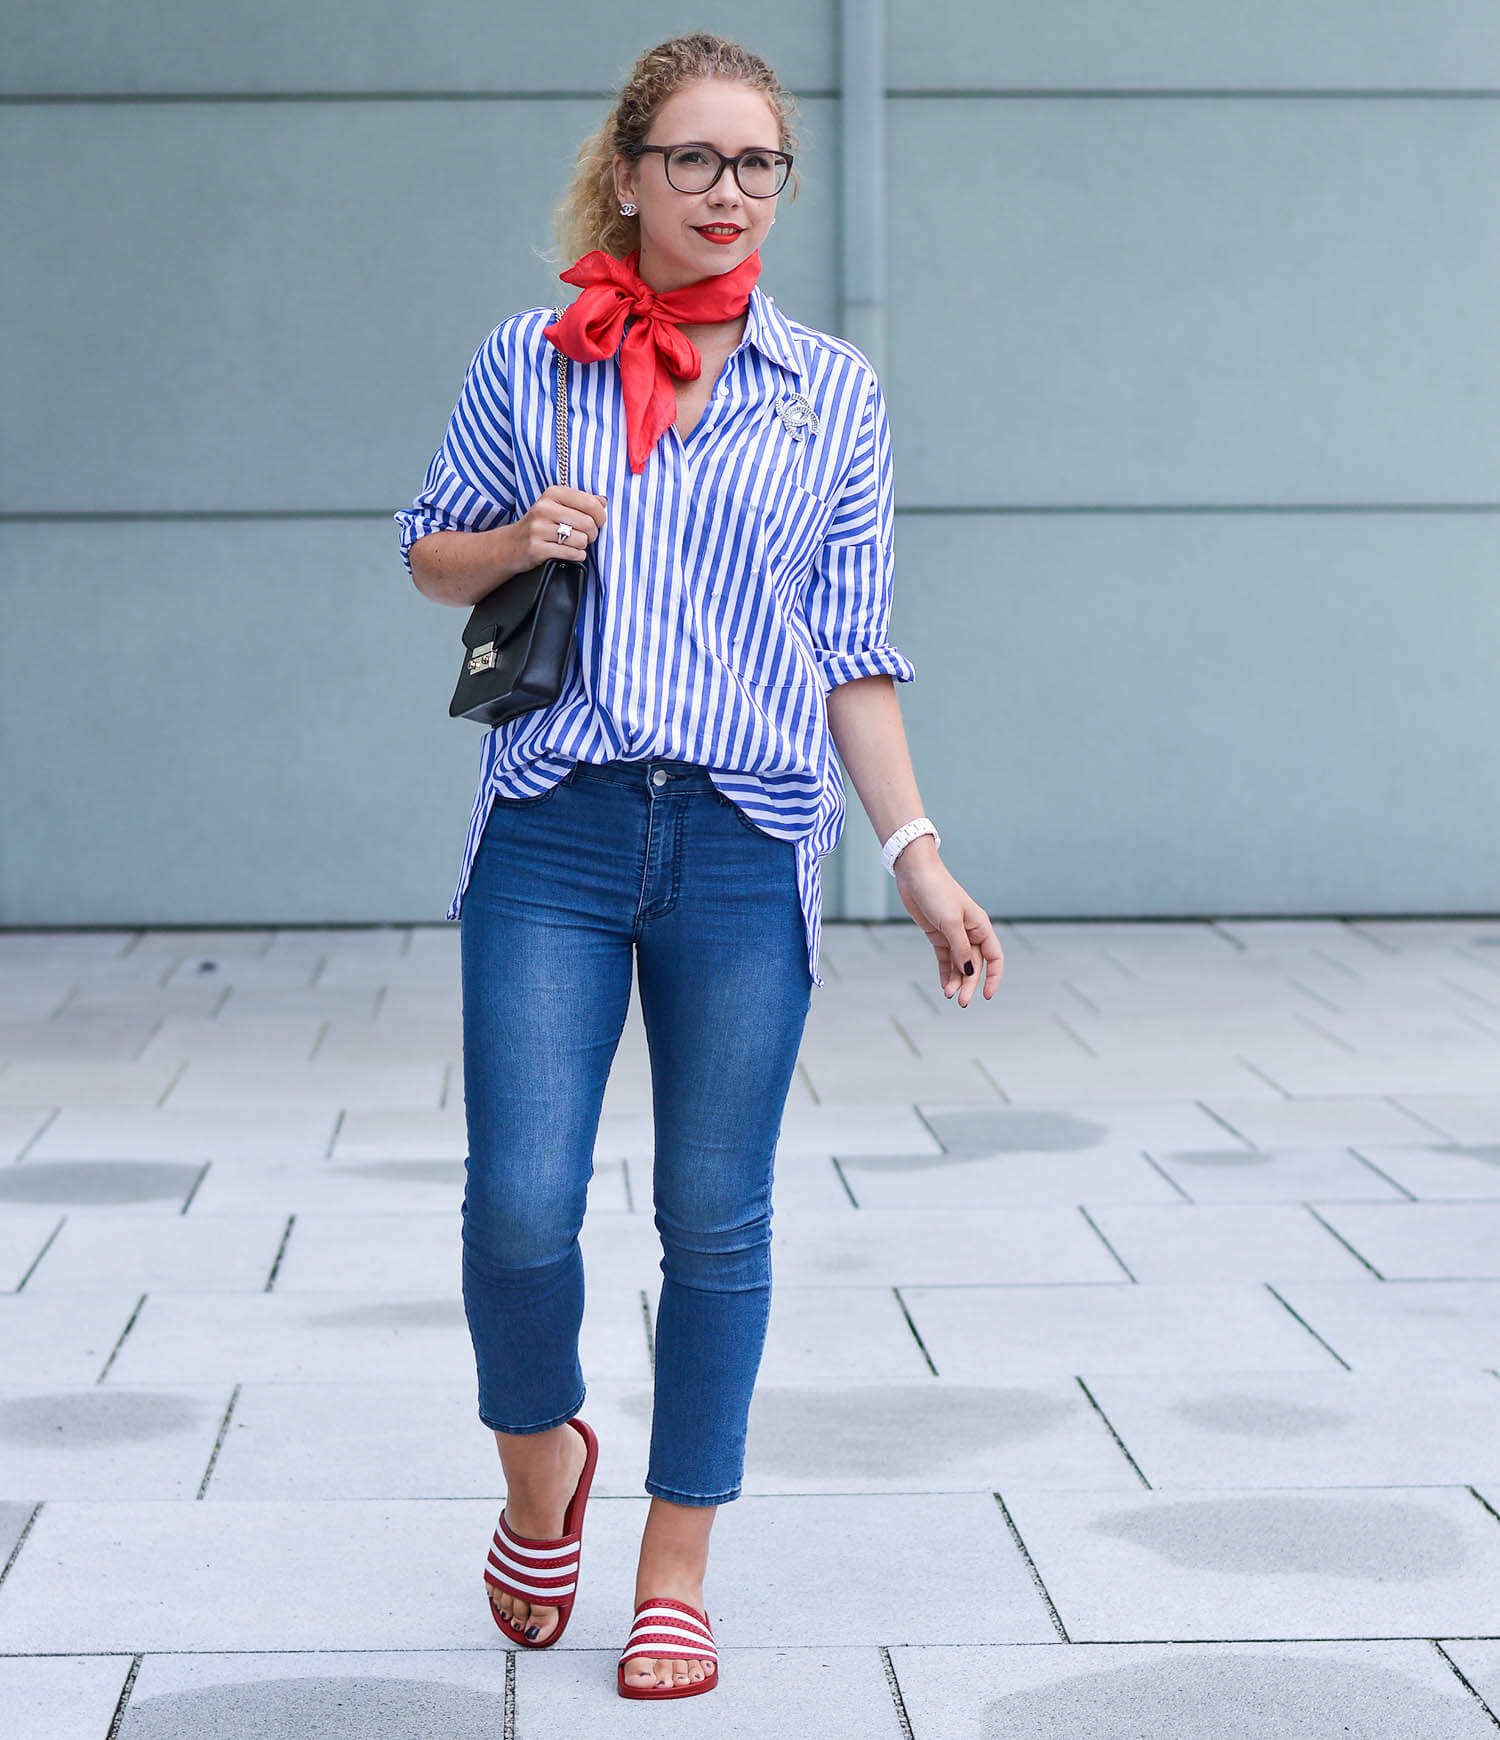 kationette-fashionblog-nrw-outfit-zara-Striped-blouse-Cropped-Jeans-Adiletten